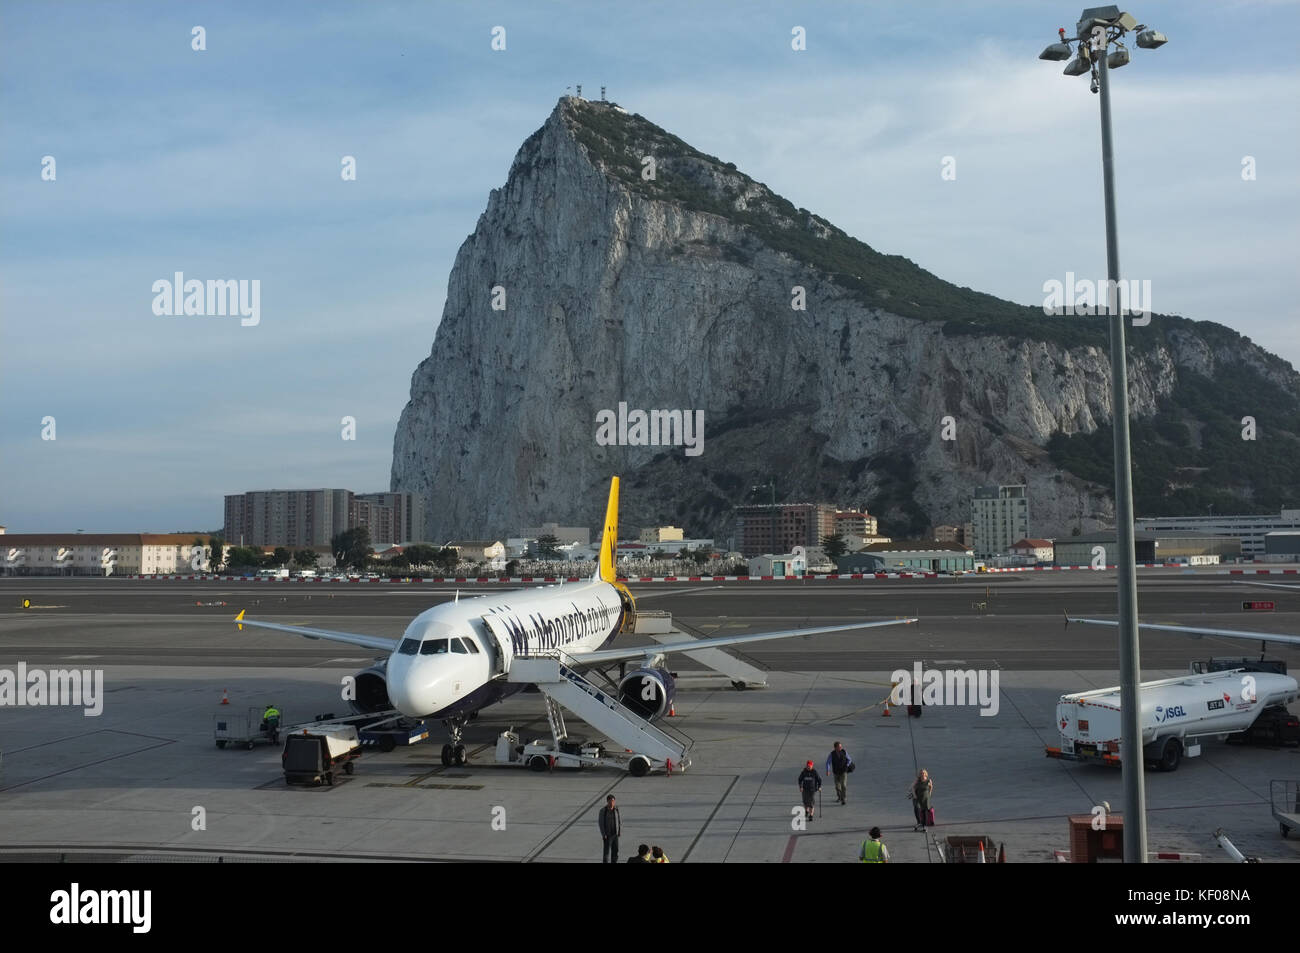 A plane prepares for take off at Gibraltar International Airport, viewed from the departure lounge, Gibraltar, September - Stock Image